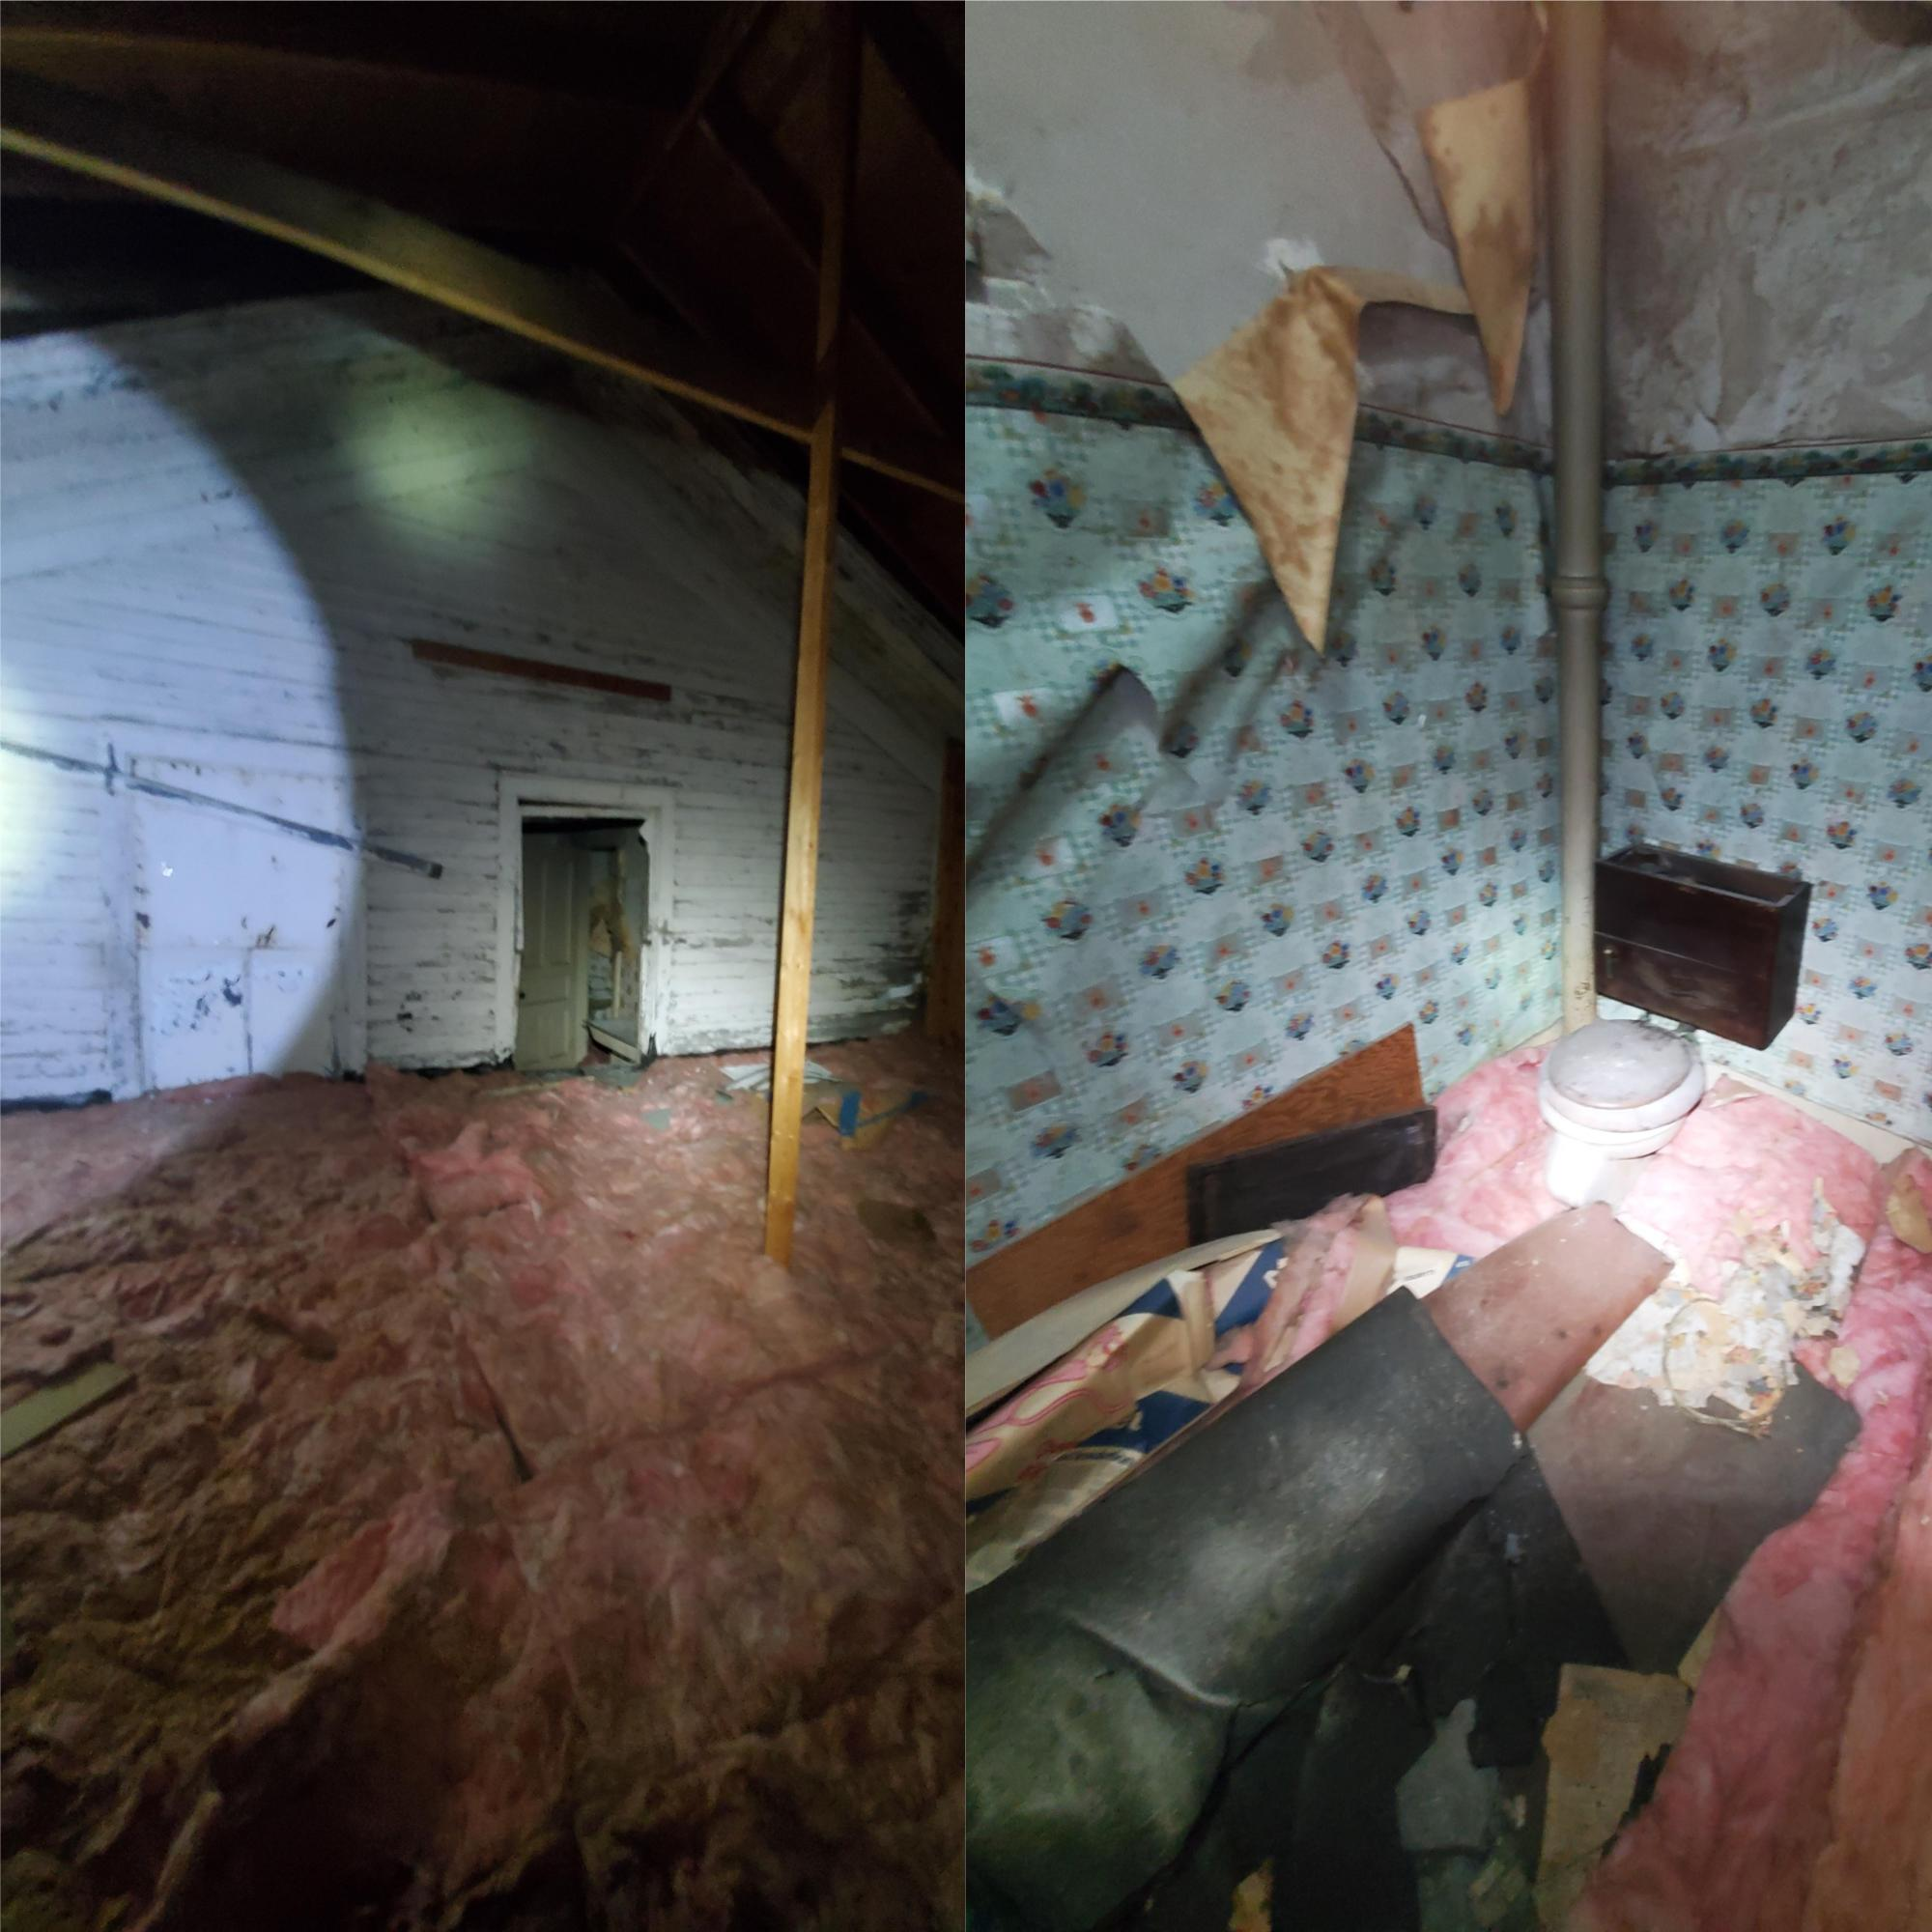 Man Discovers 'creepy' Hidden Rooms In Abandoned Attic